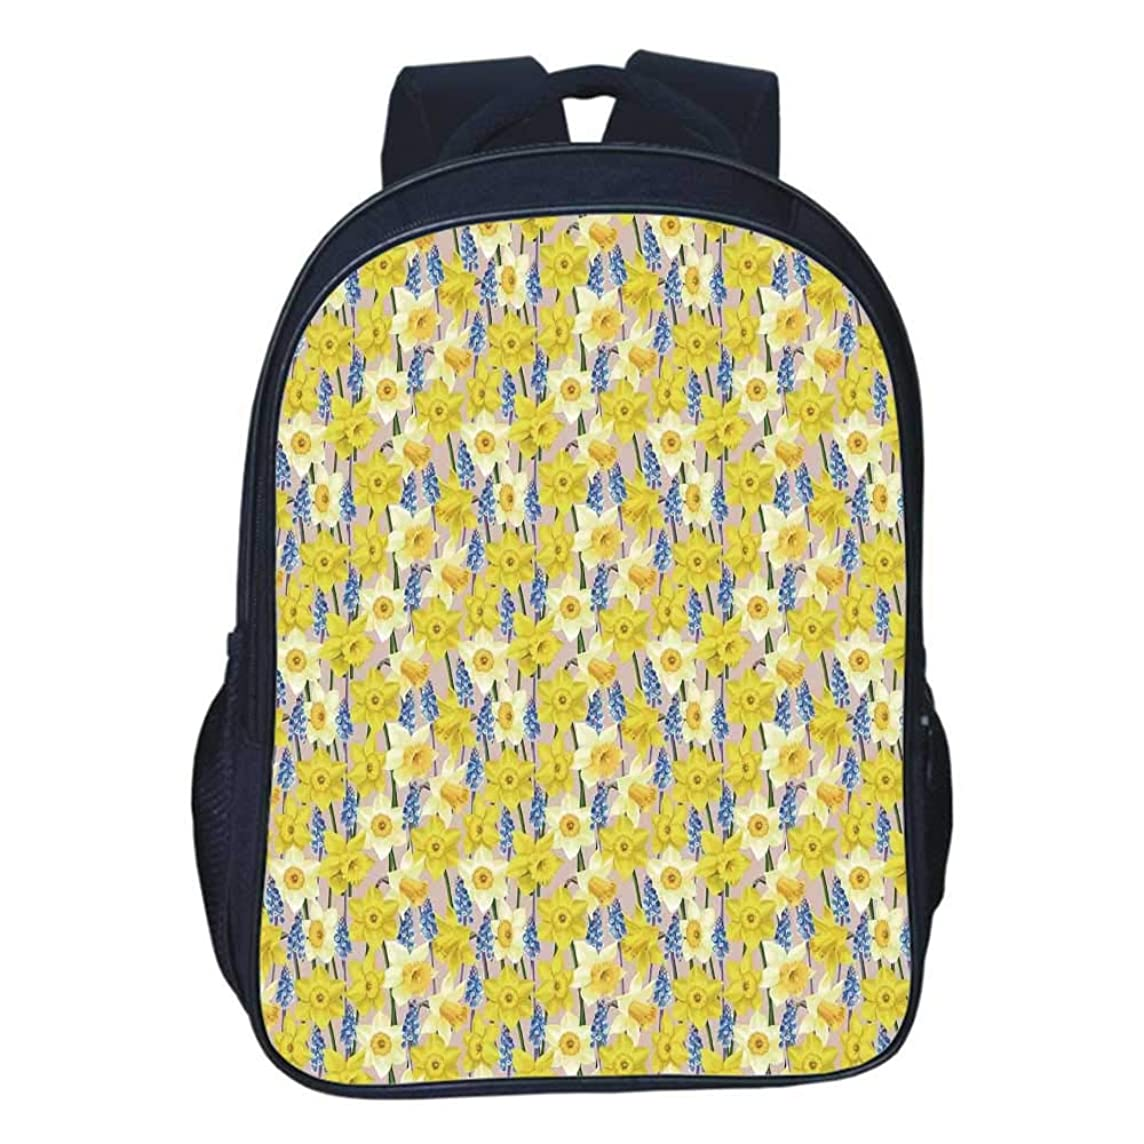 Daffodil Decor Durable Double black backpack,Floral Theme Daffodil and Muscari Blossoming Stems Branches Classic Flourish Artwork For classroom,11.8